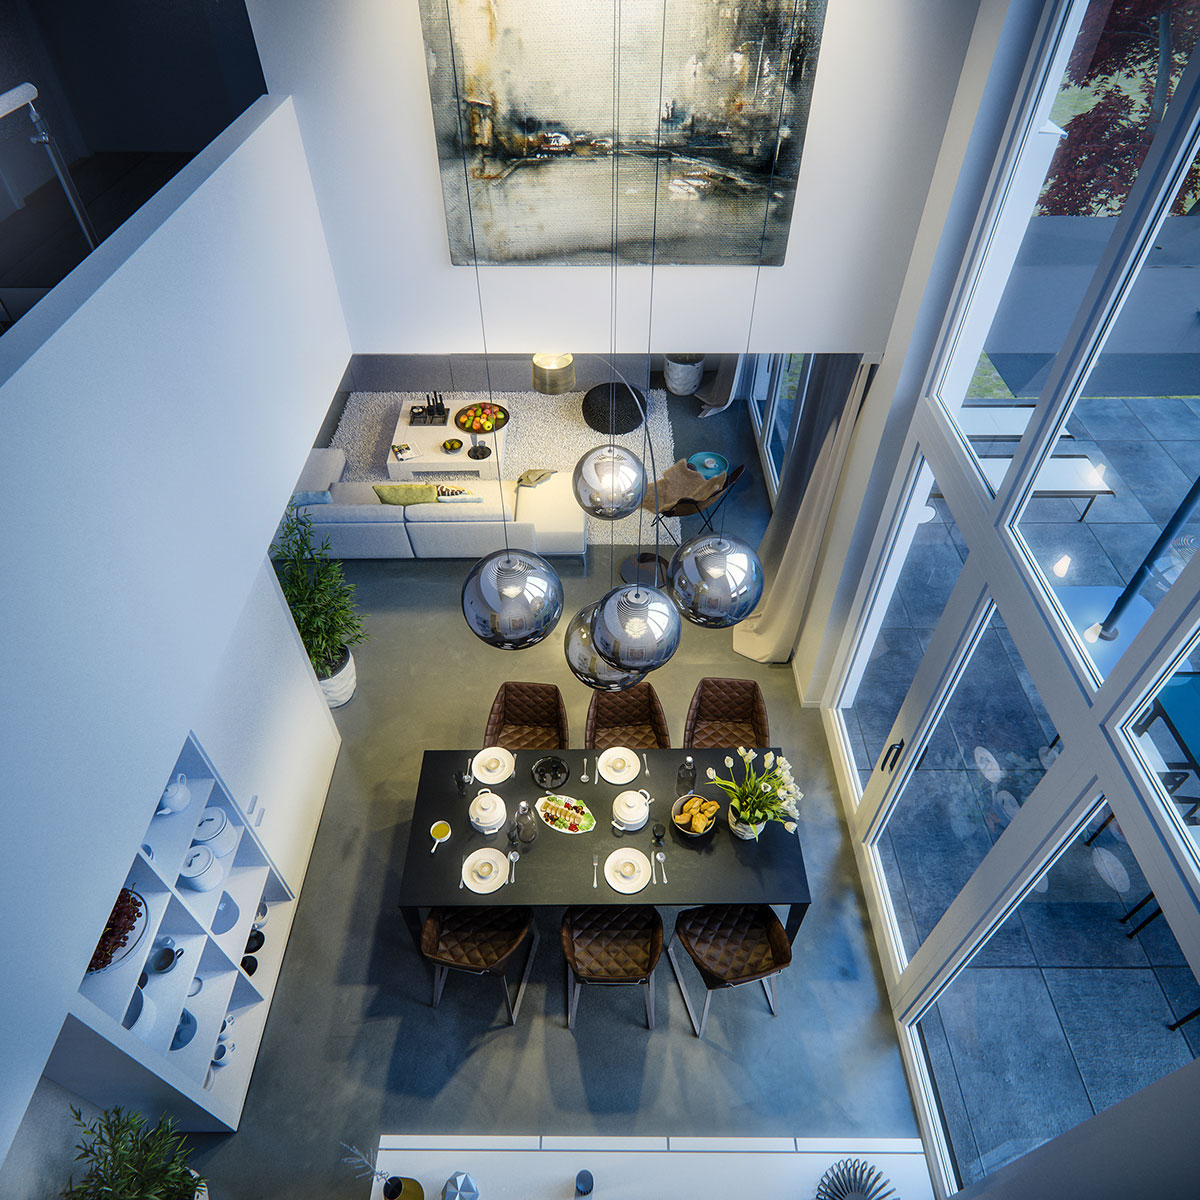 Contemporary dining room view from above by night